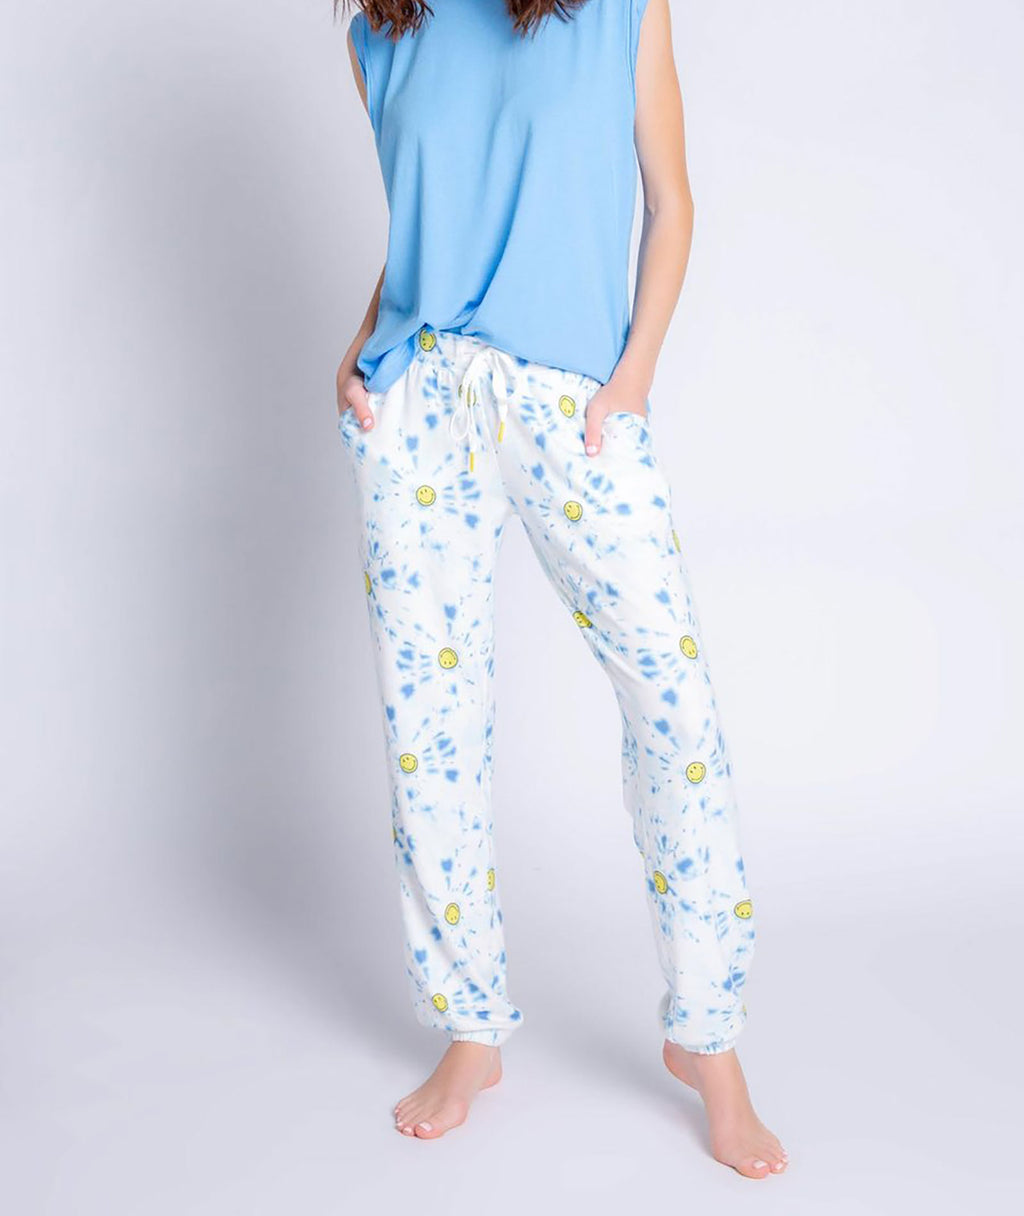 P.J. Salvage Women Blue Smiley Sweatpants